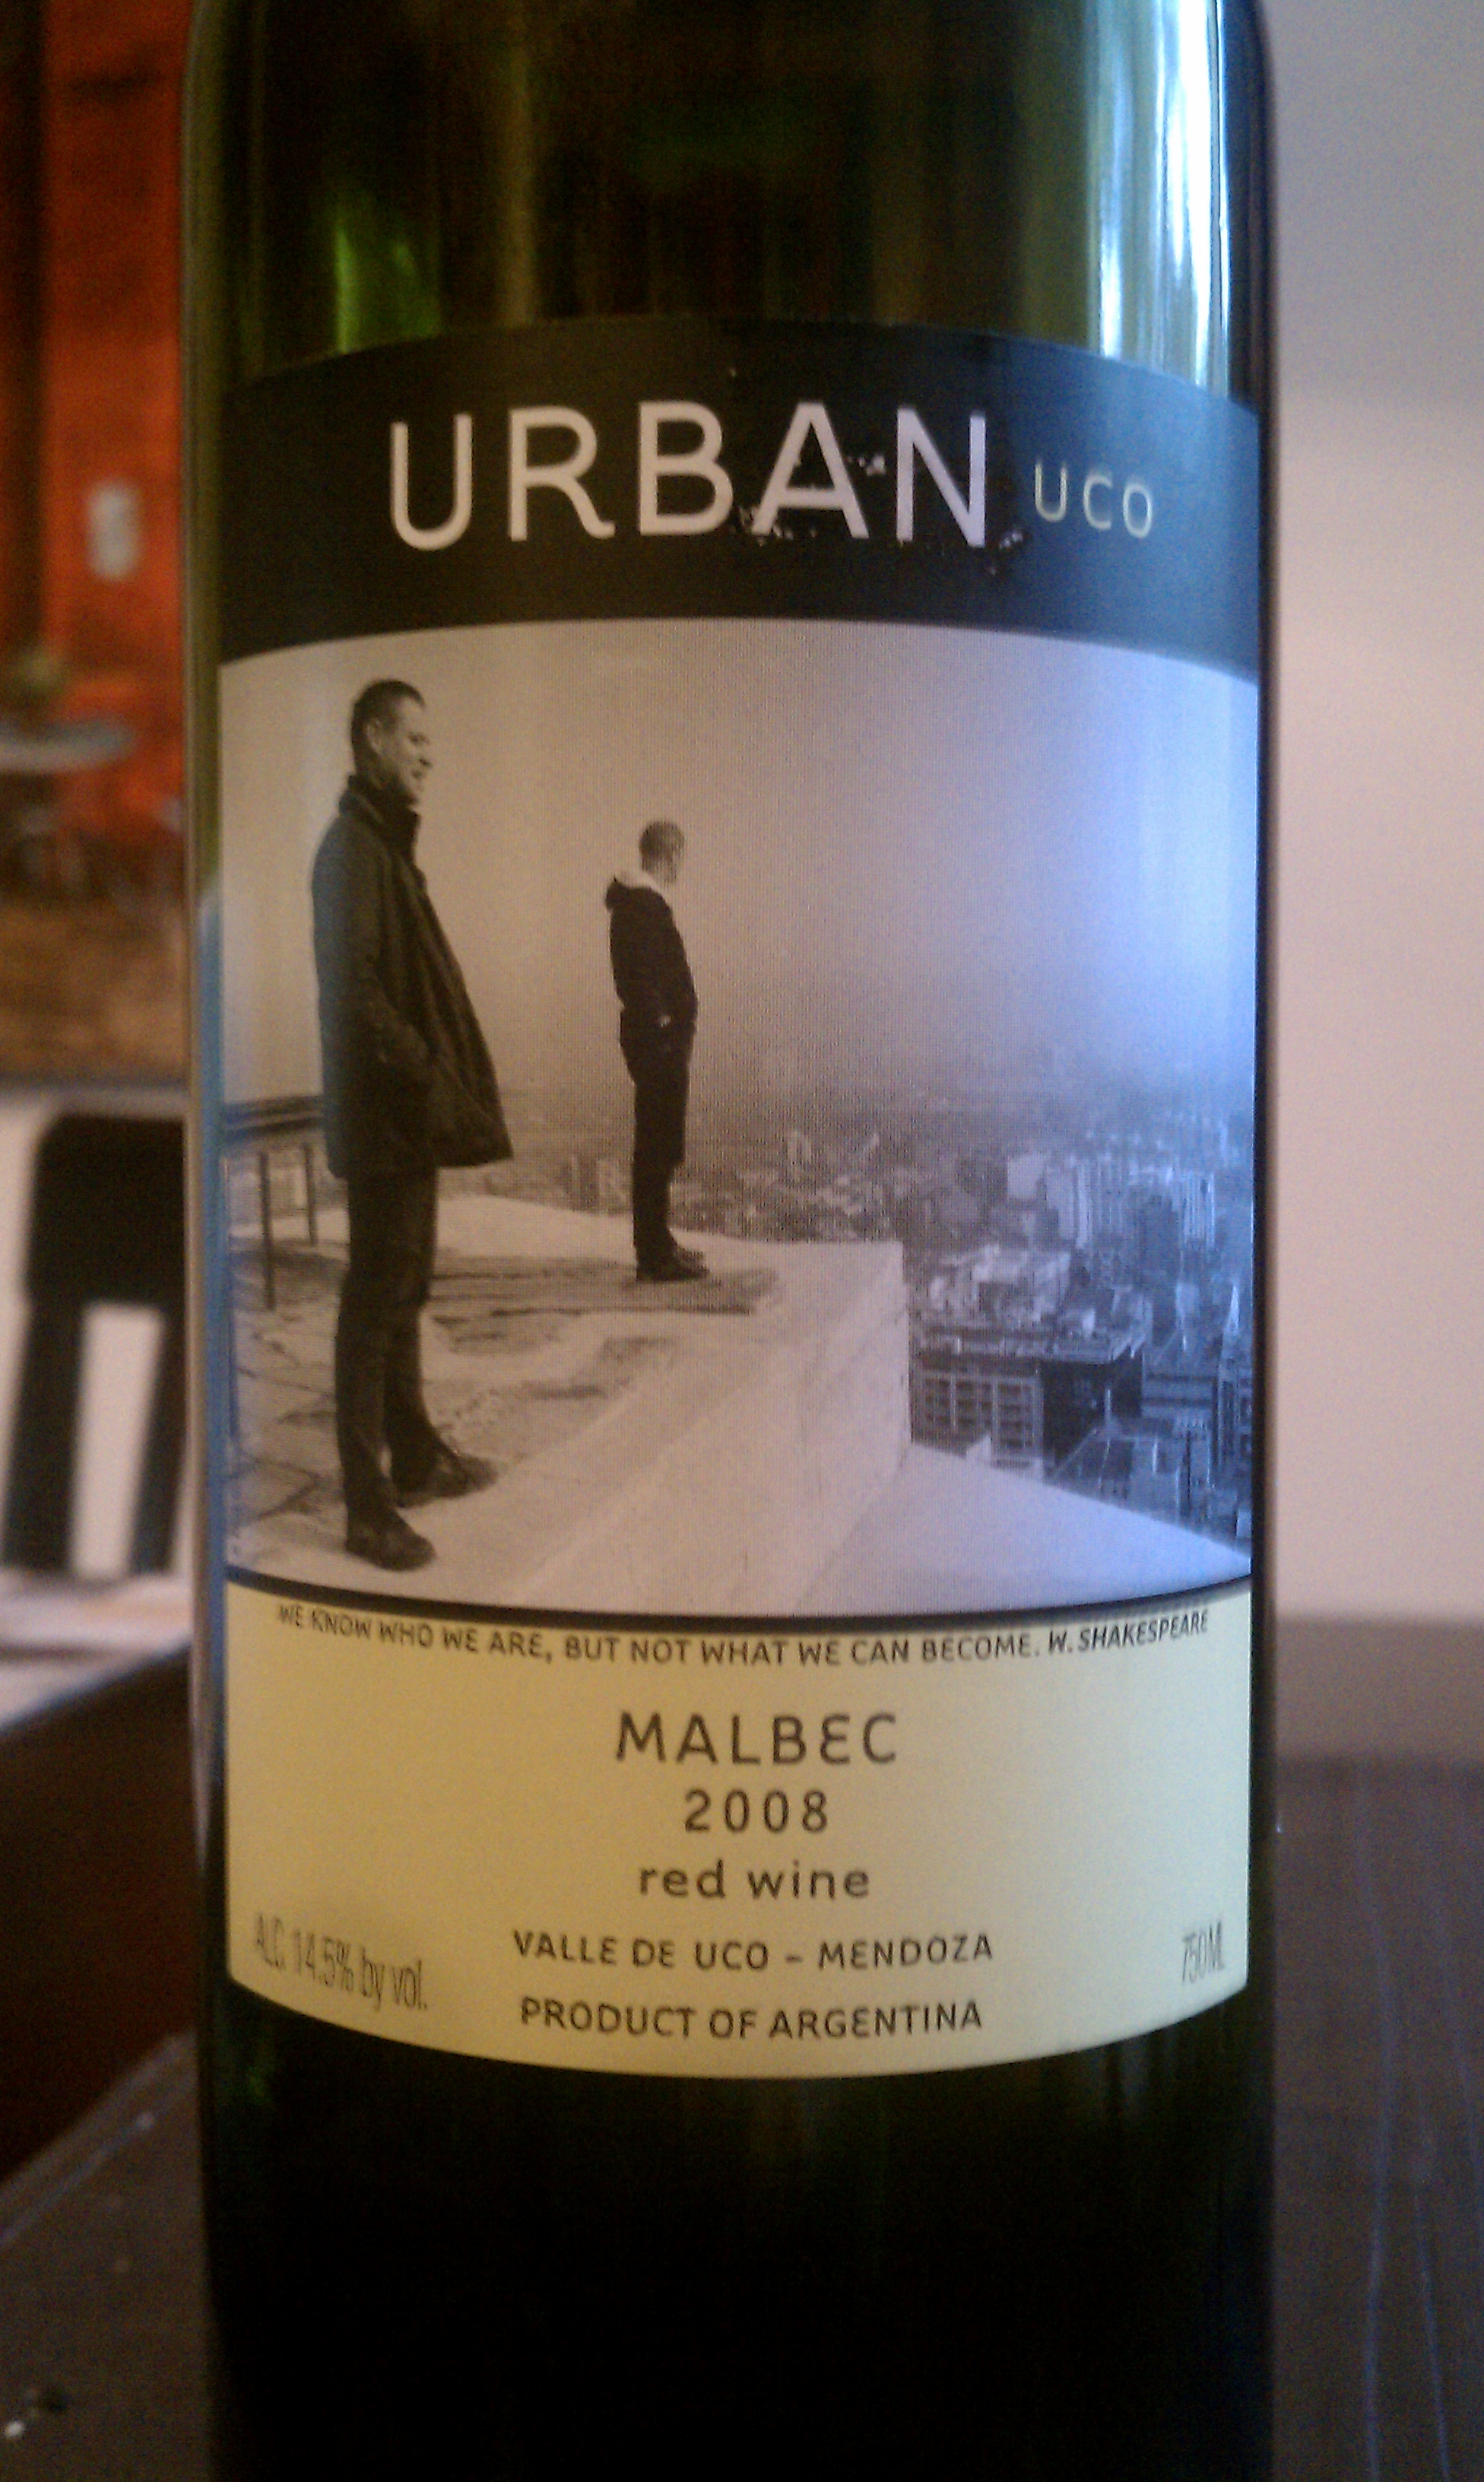 2008 Urban Uco Malbec from Argentina